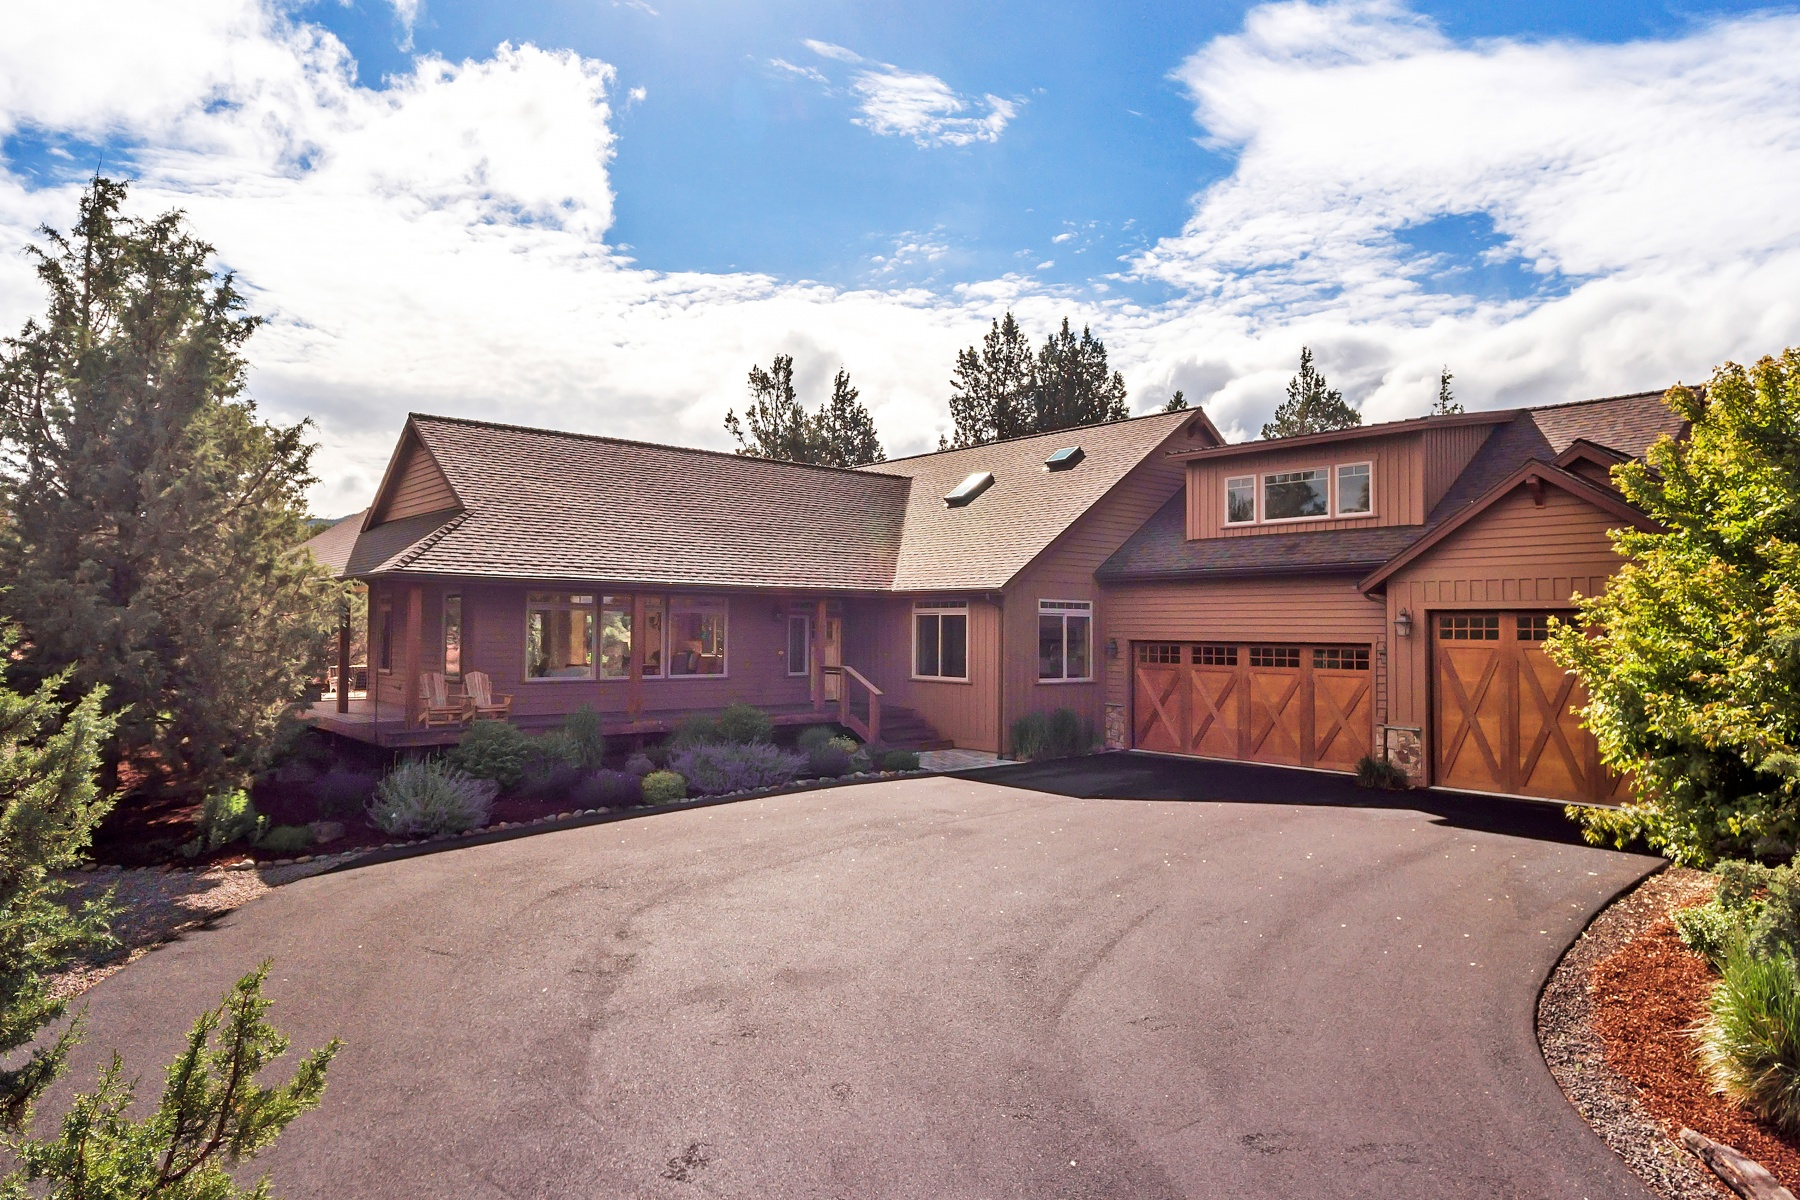 Maison unifamiliale pour l Vente à 16111 Southwest Shumway Road Powell Butte, Oregon, 97753 États-Unis